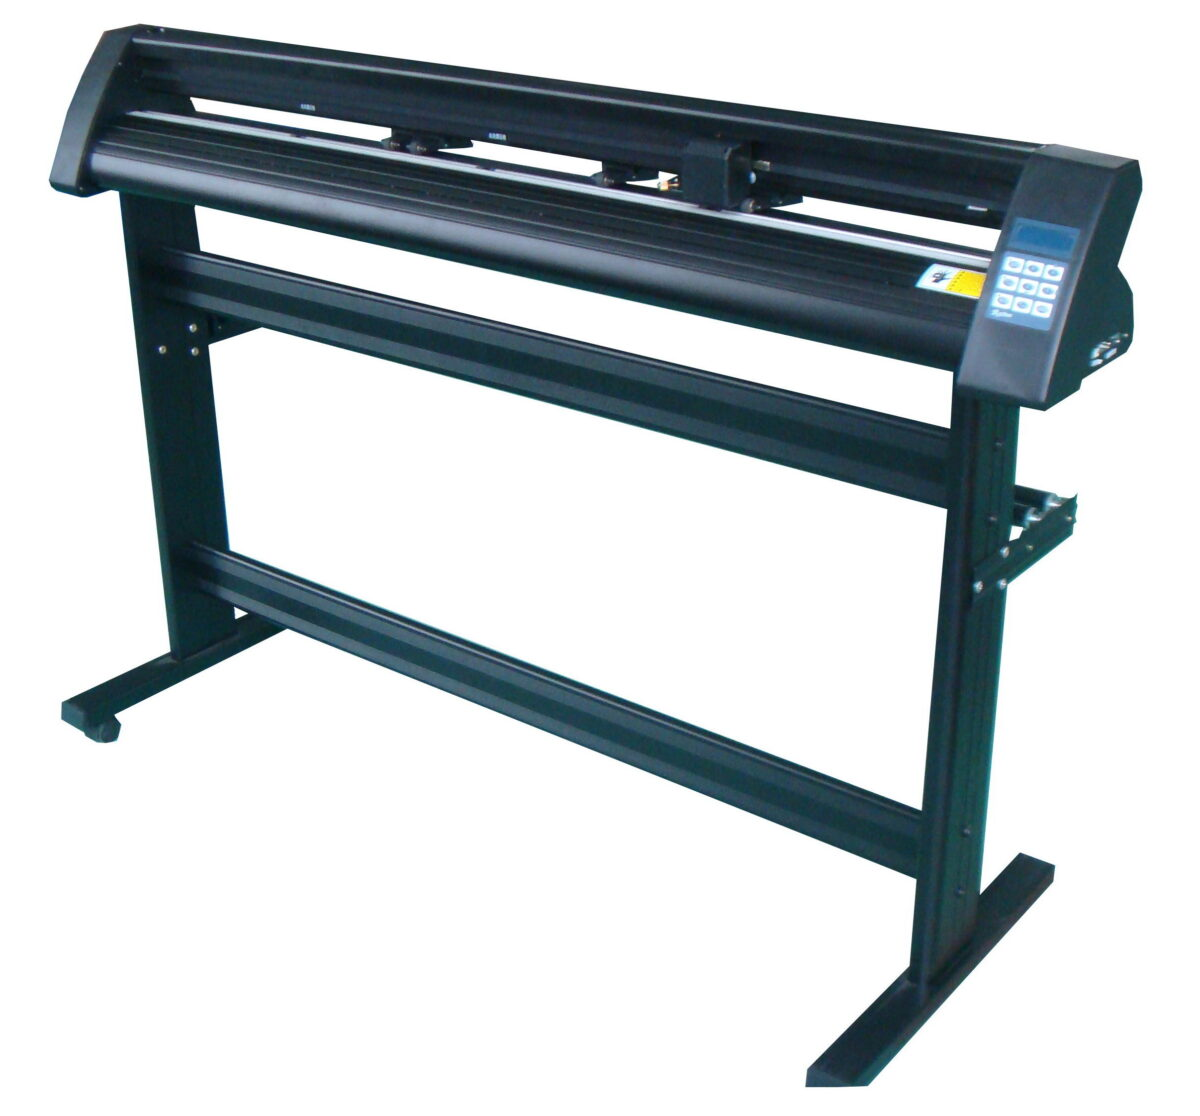 48-Inch-Popular-Cutting-Plotter-Vinyl-Plotter-Vinyl-Cutter